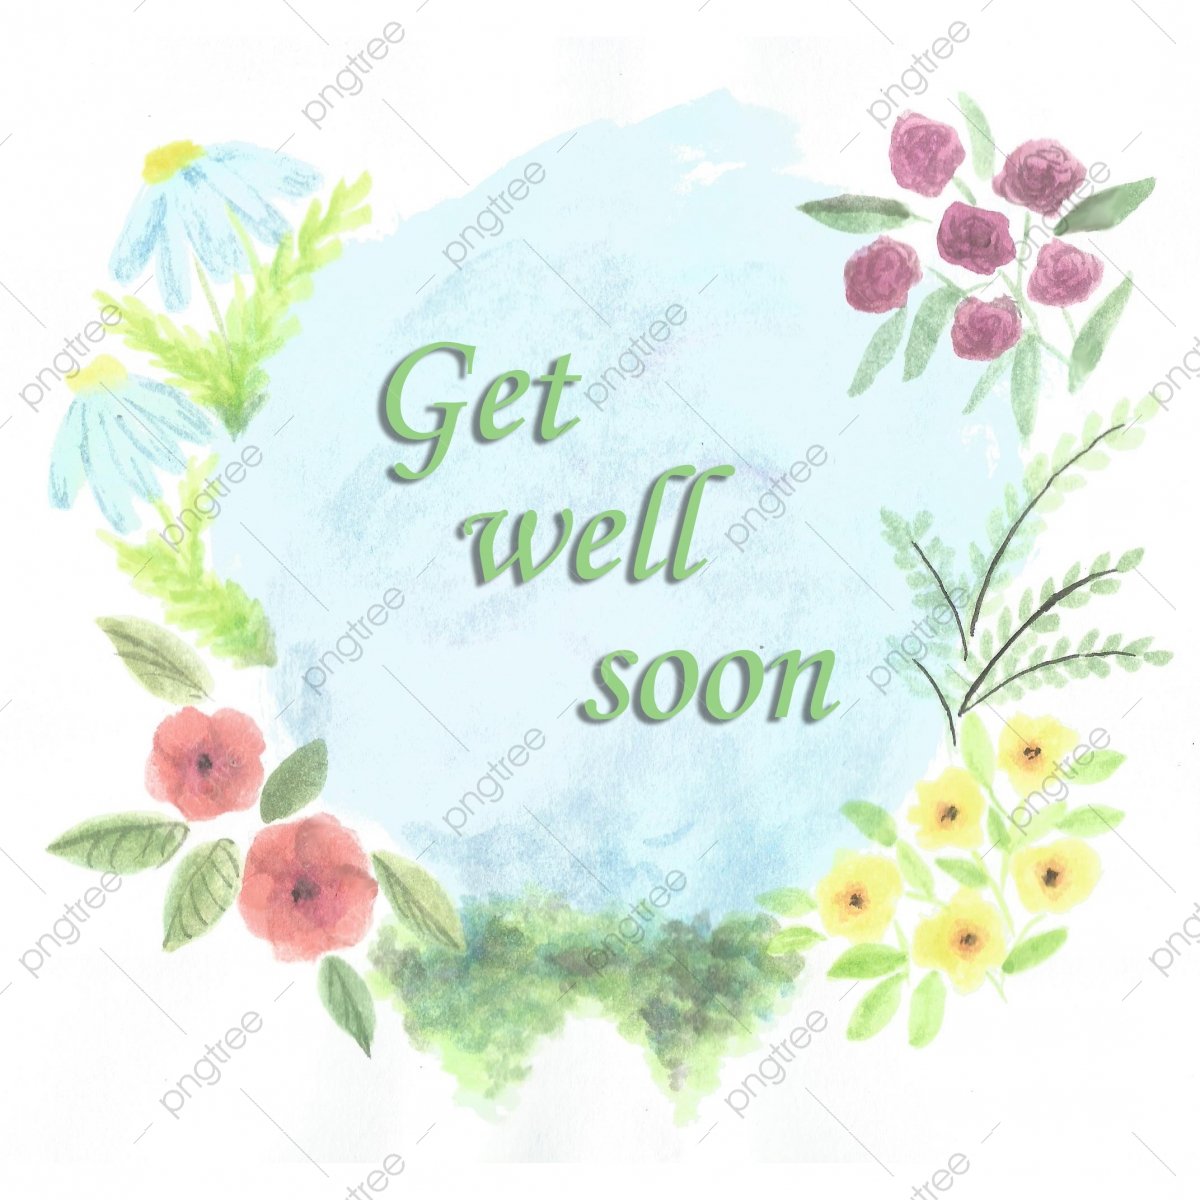 Get Well Soon Card With Flowers Get Well Soon Card Flowers Png Transparent Clipart Image And Psd File For Free Download